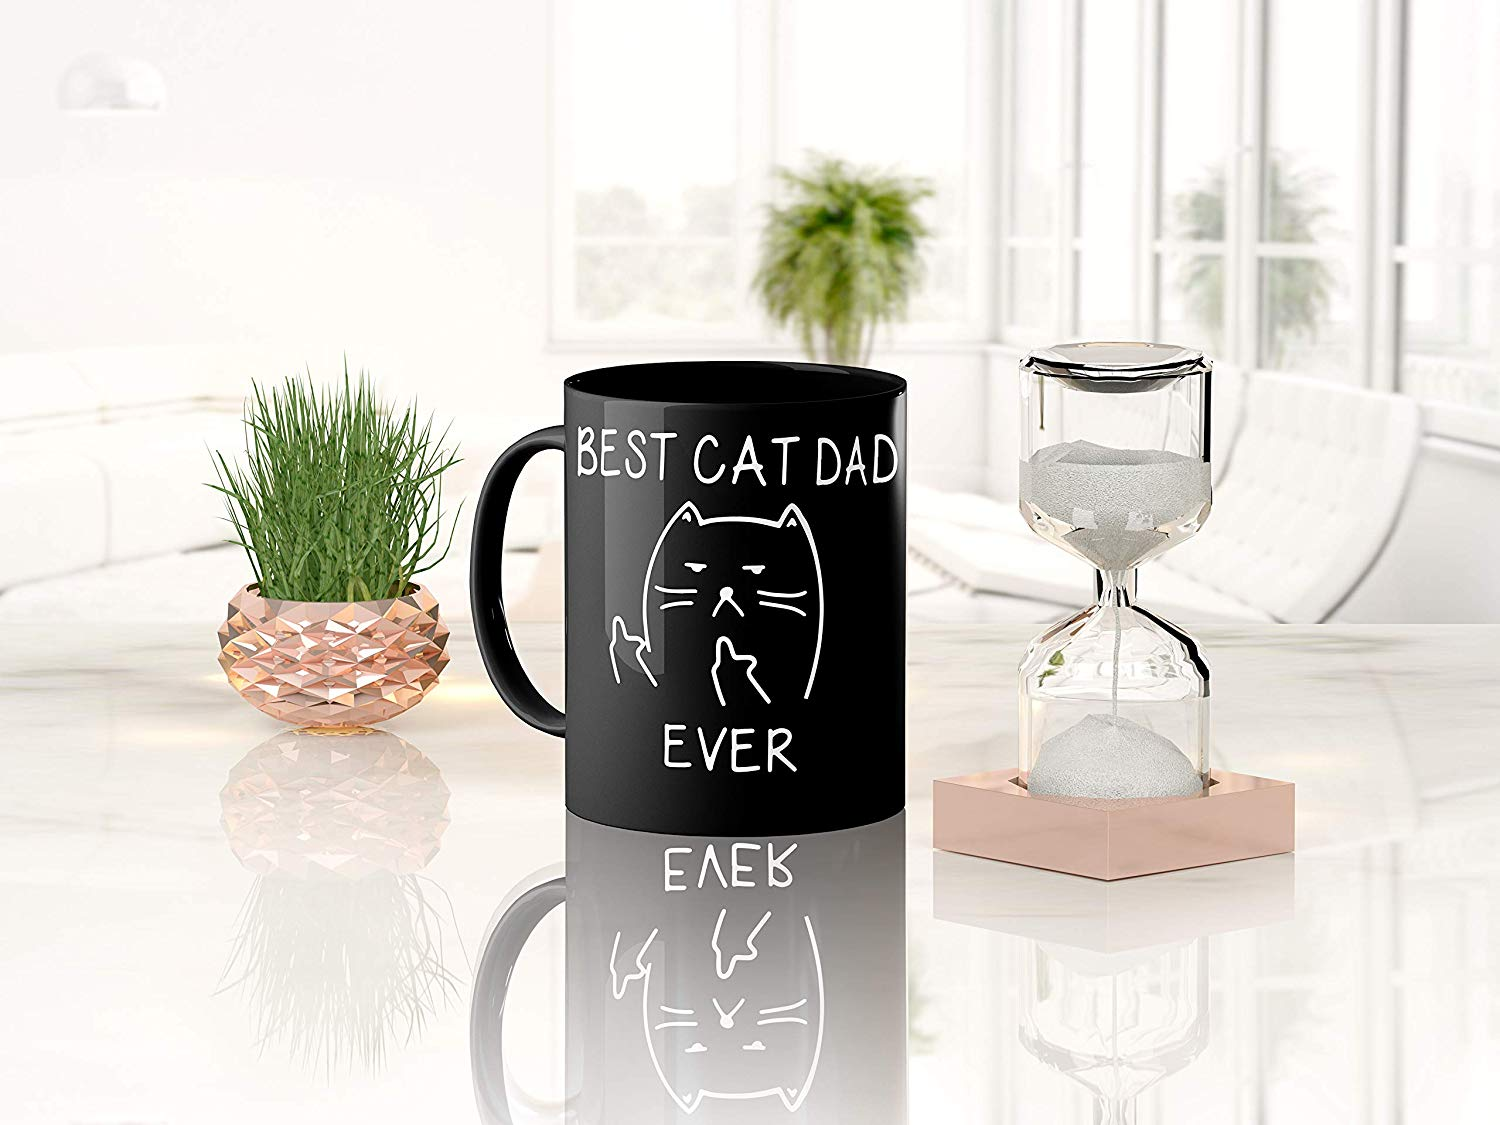 Best Cat Dad EverFunny Cat Lover Gifts Funny Middle Finger Black Coffee MugUnique Birthday Gift For Dad B079FVKRCM 7